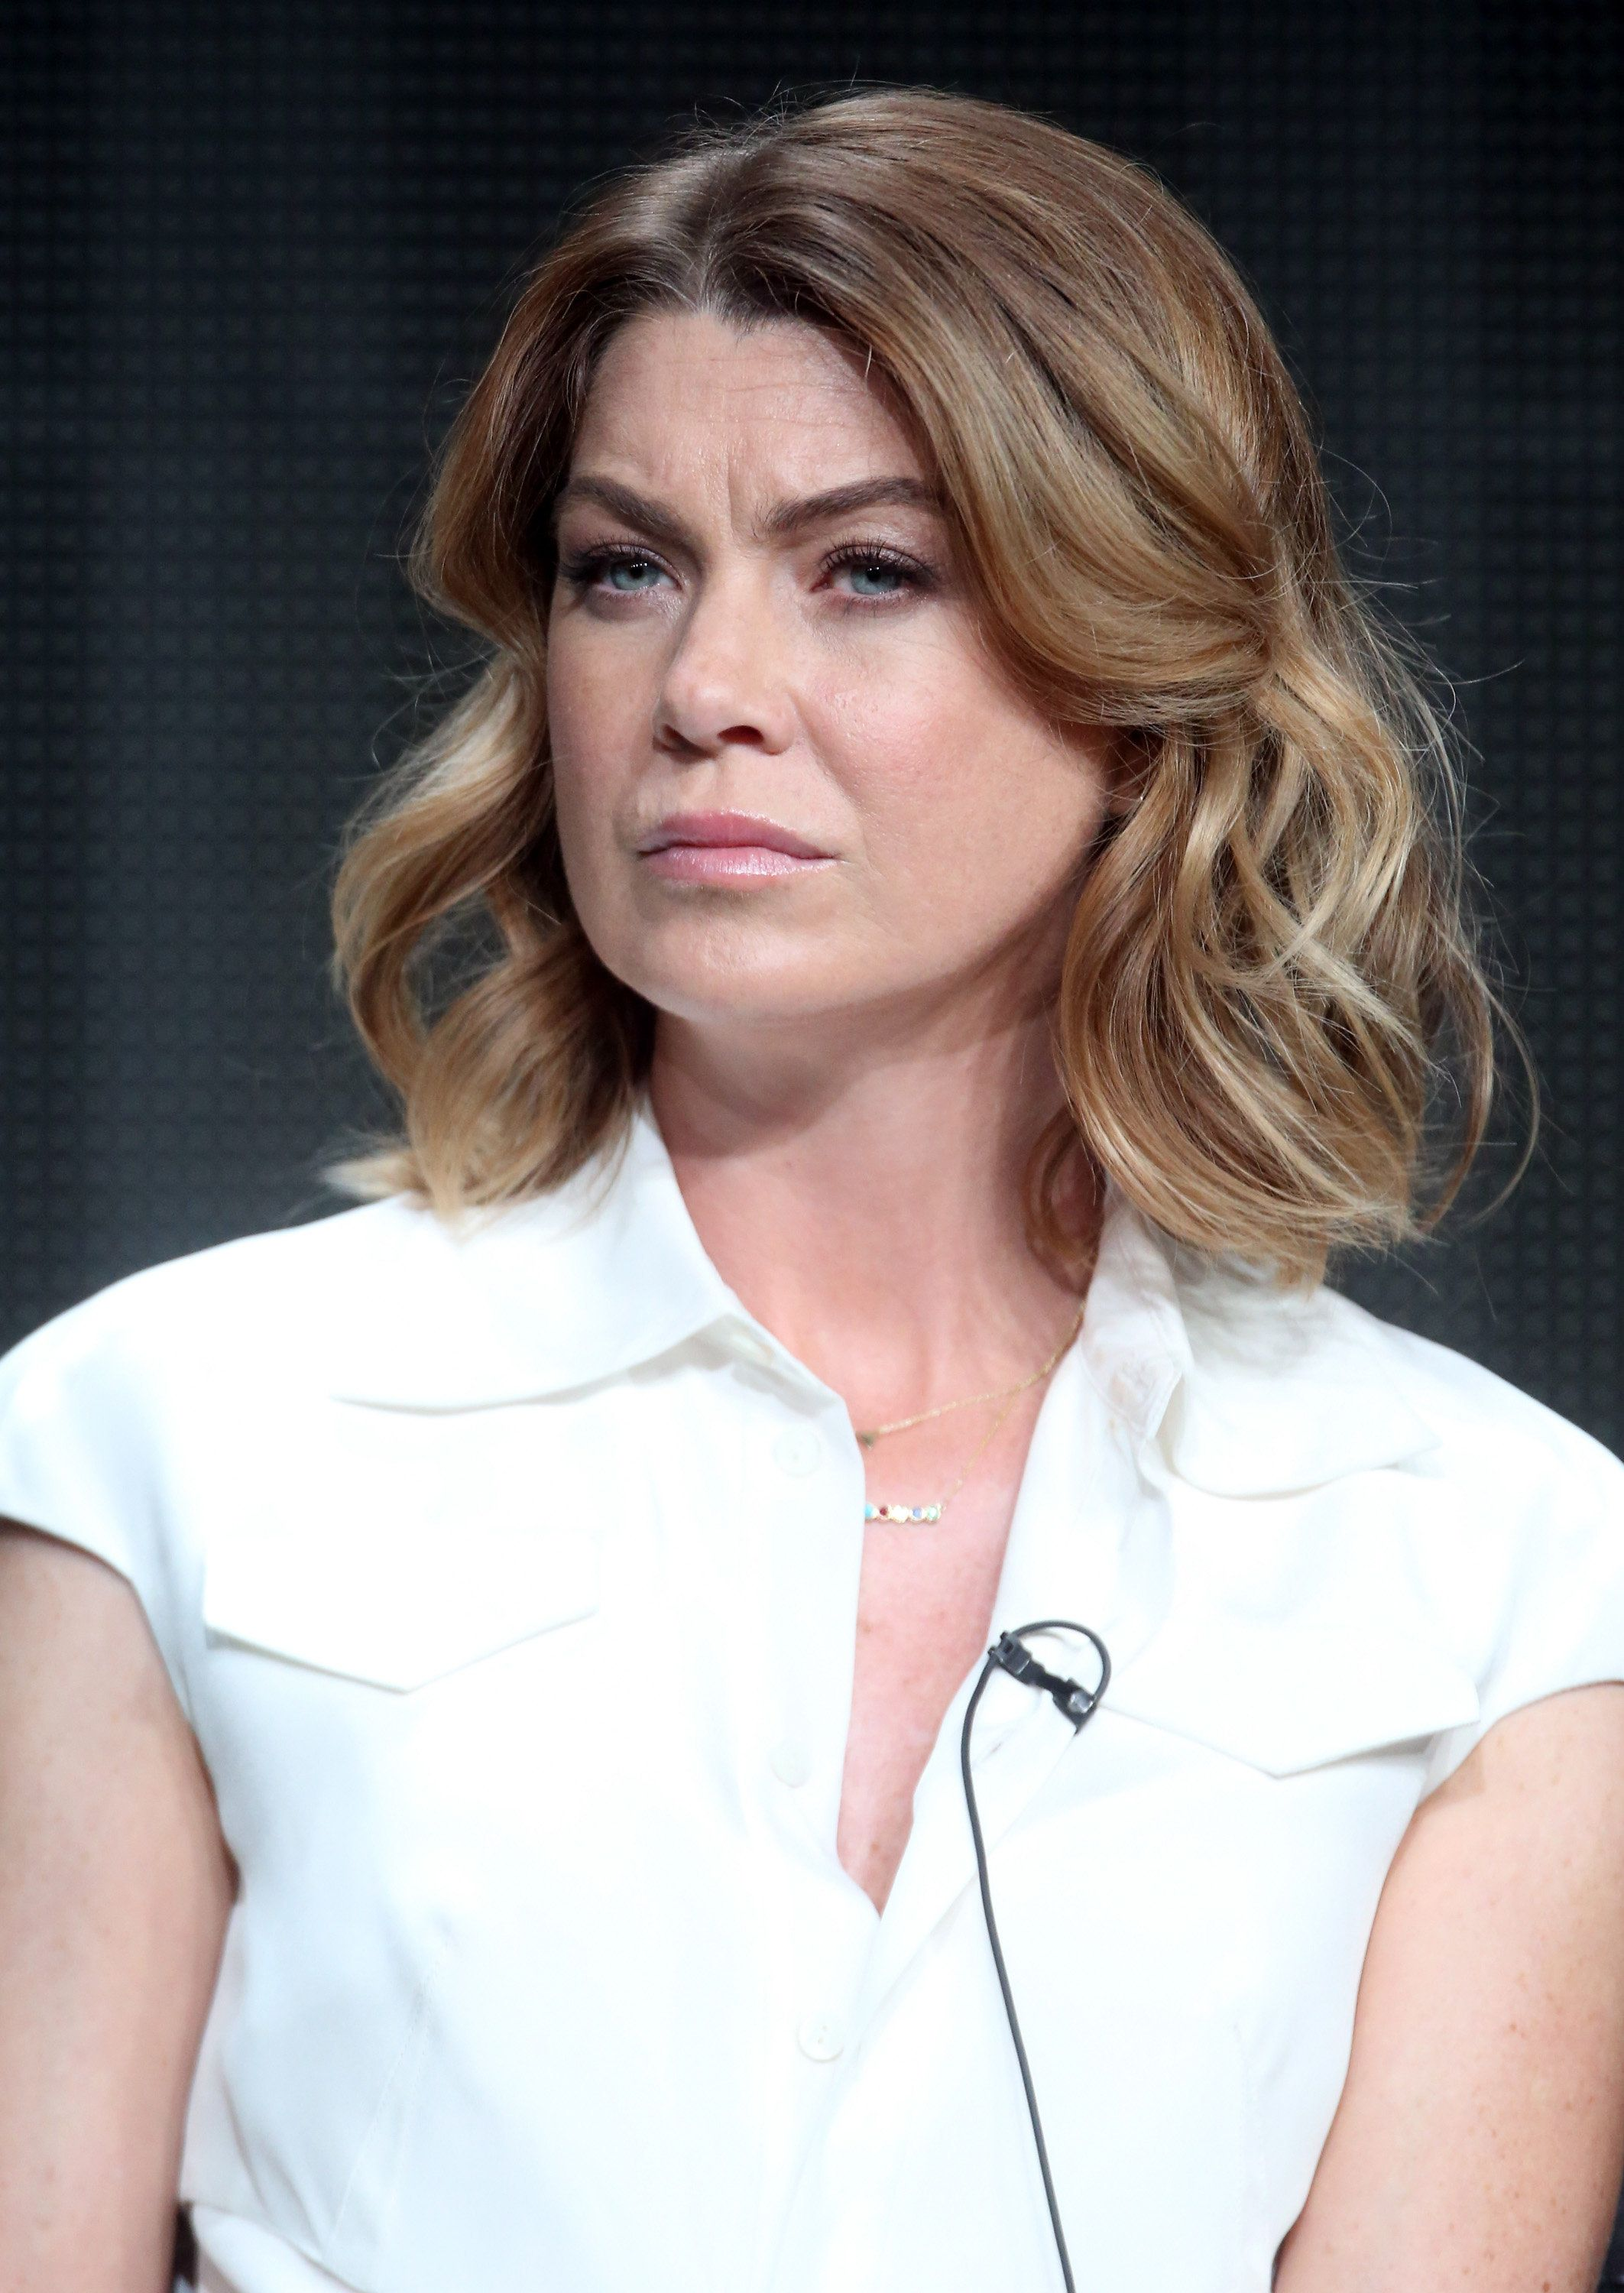 BEVERLY HILLS, CA - AUGUST 04:  Actress Ellen Pompeo speaks onstage during the 'Grey's Anatomy,' 'Scandal,' and 'How To Get Away With Murder' panel discussion at the ABC Entertainment portion of the 2015 Summer TCA Tour at The Beverly Hilton Hotel on August 4, 2015 in Beverly Hills, California.  (Photo by Frederick M. Brown/Getty Images)